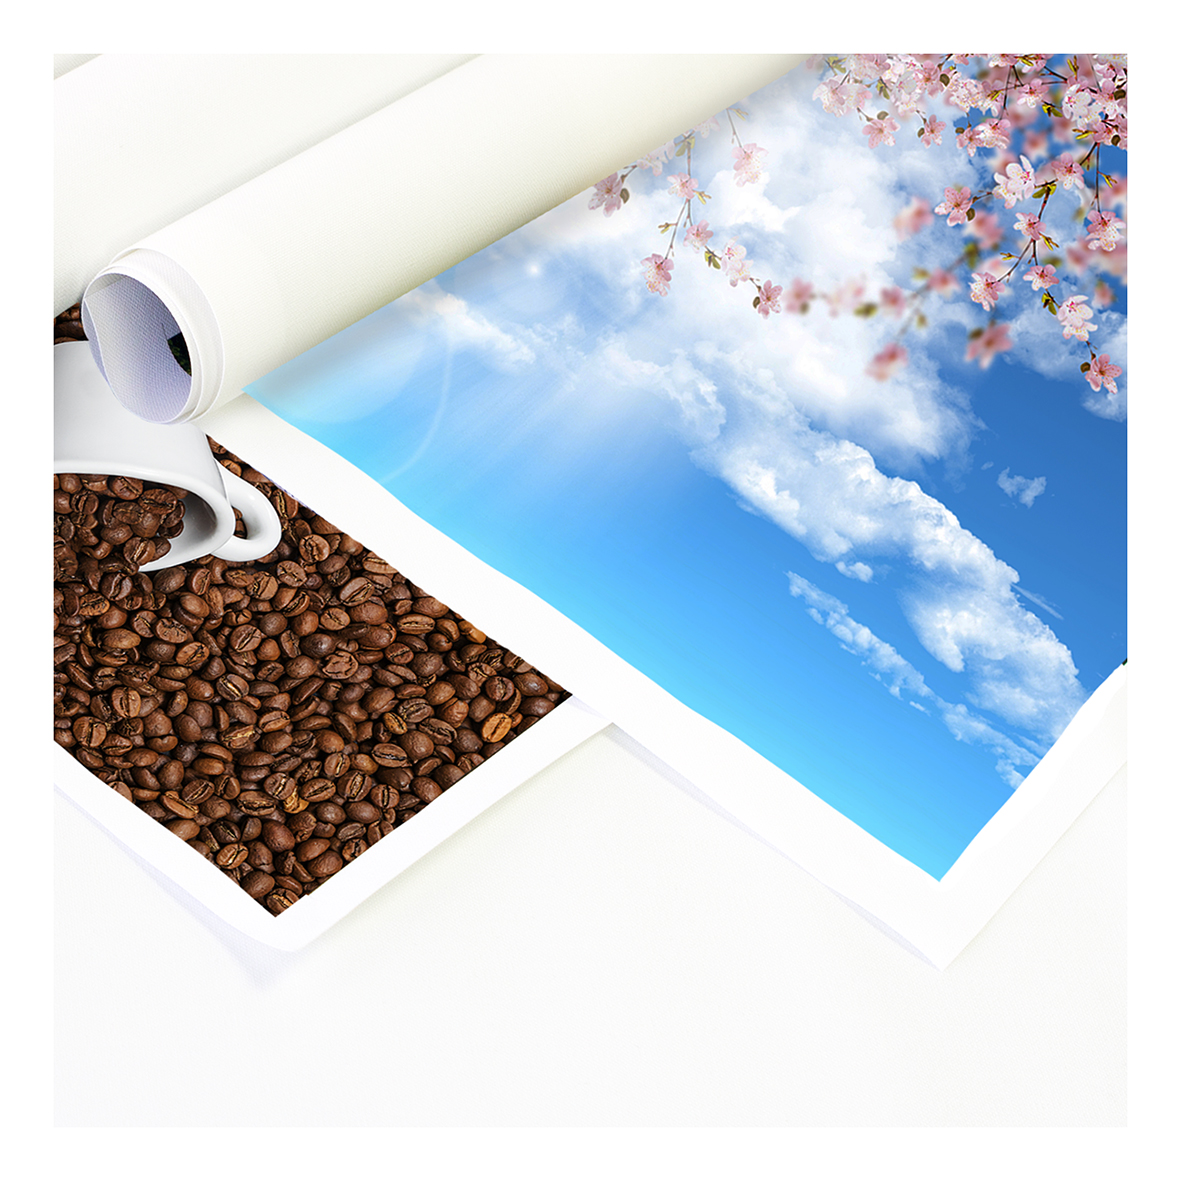 Roll of canvas paper with blue sky and blossom design.